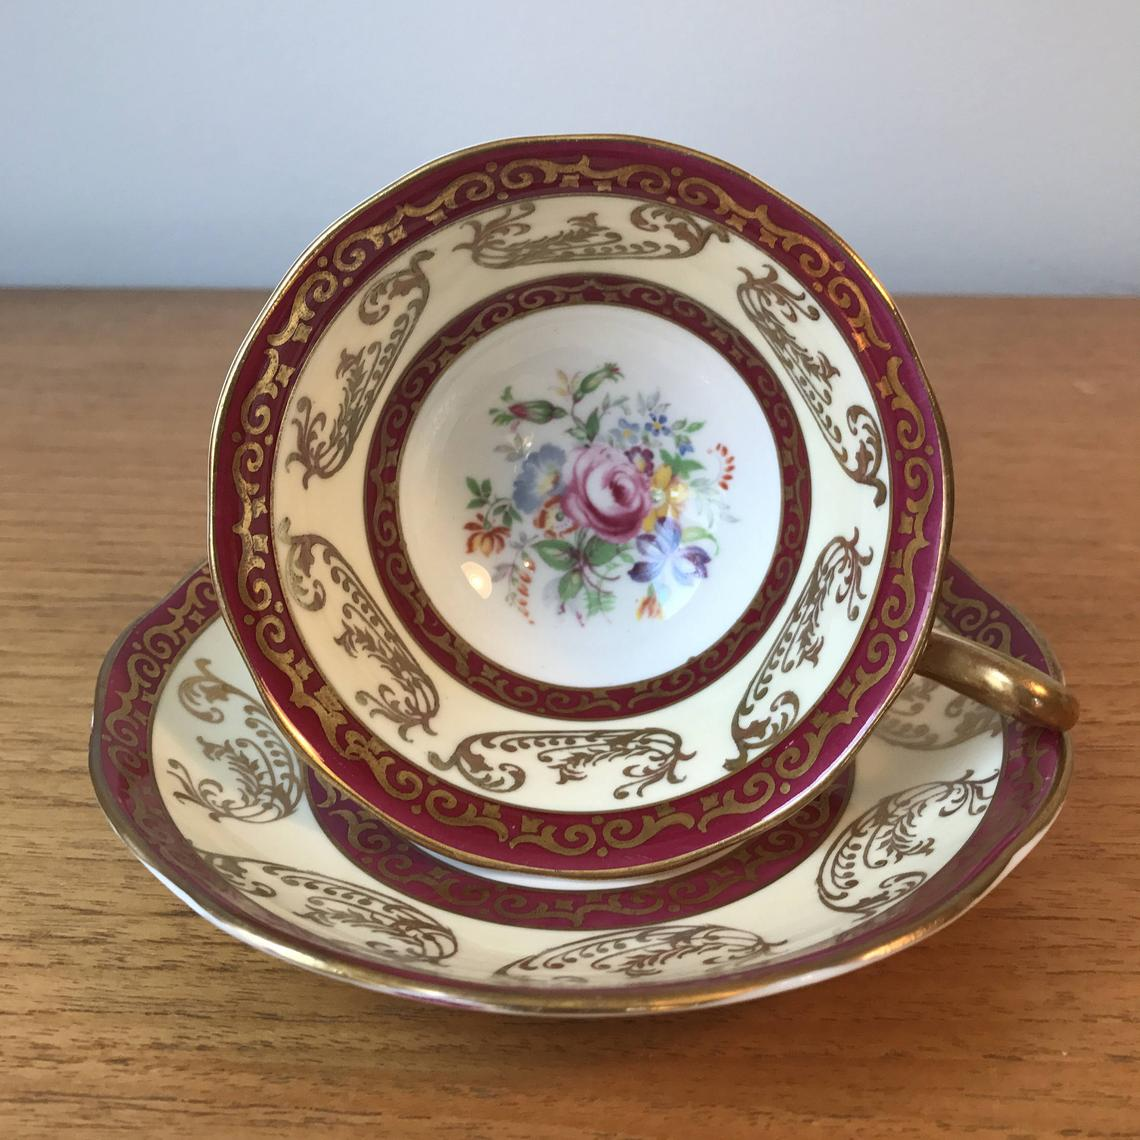 Royal Albert Vintage Teacup and Saucer, Raspberry Red, Cream, White and Gold Tea Cup and Saucer Duo, Flower Bouquet Centres, Bone China